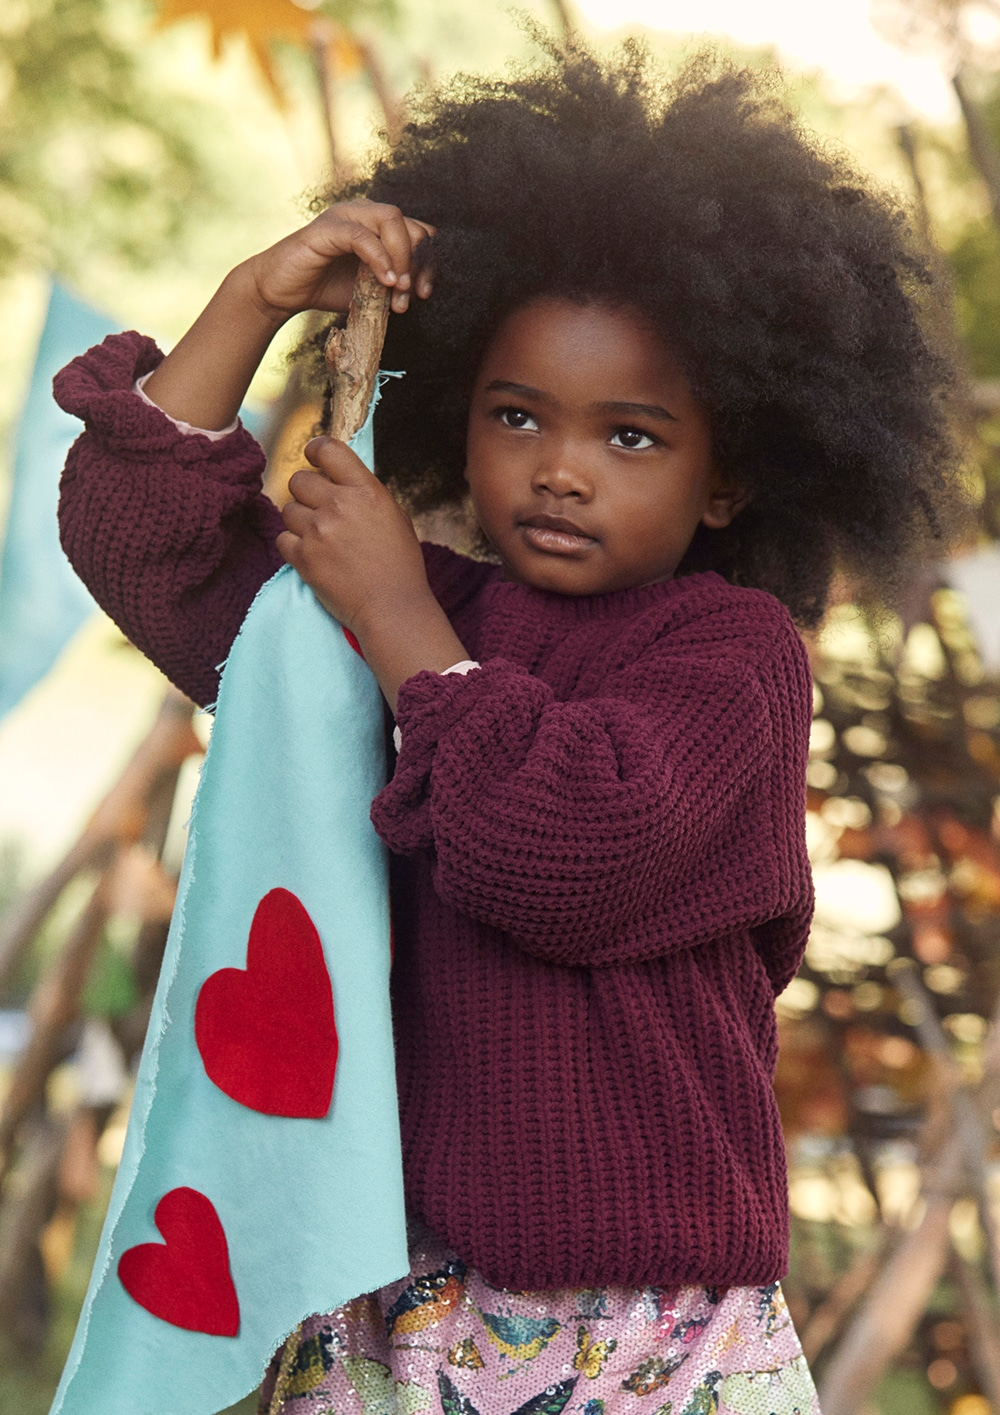 H M Responds To Backlash Over Ad With Black Child Model S Natural